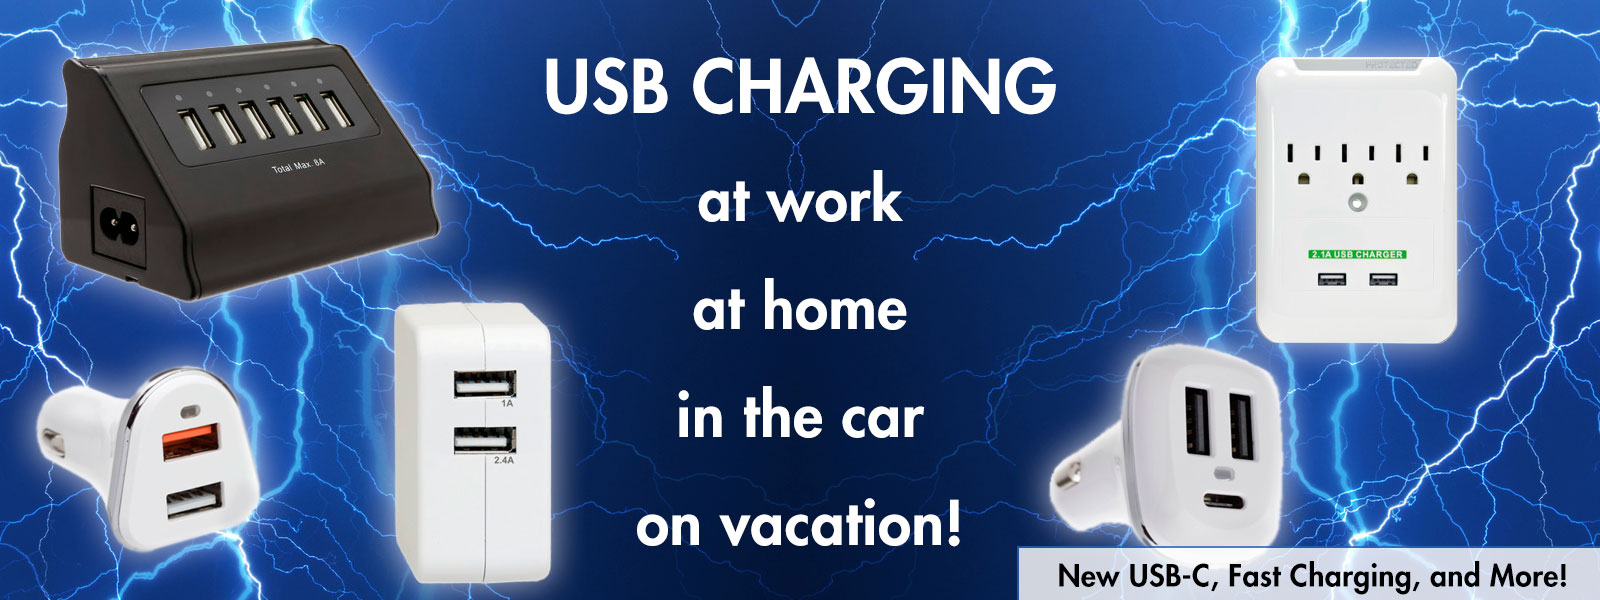 Charge it all everywhere with USB